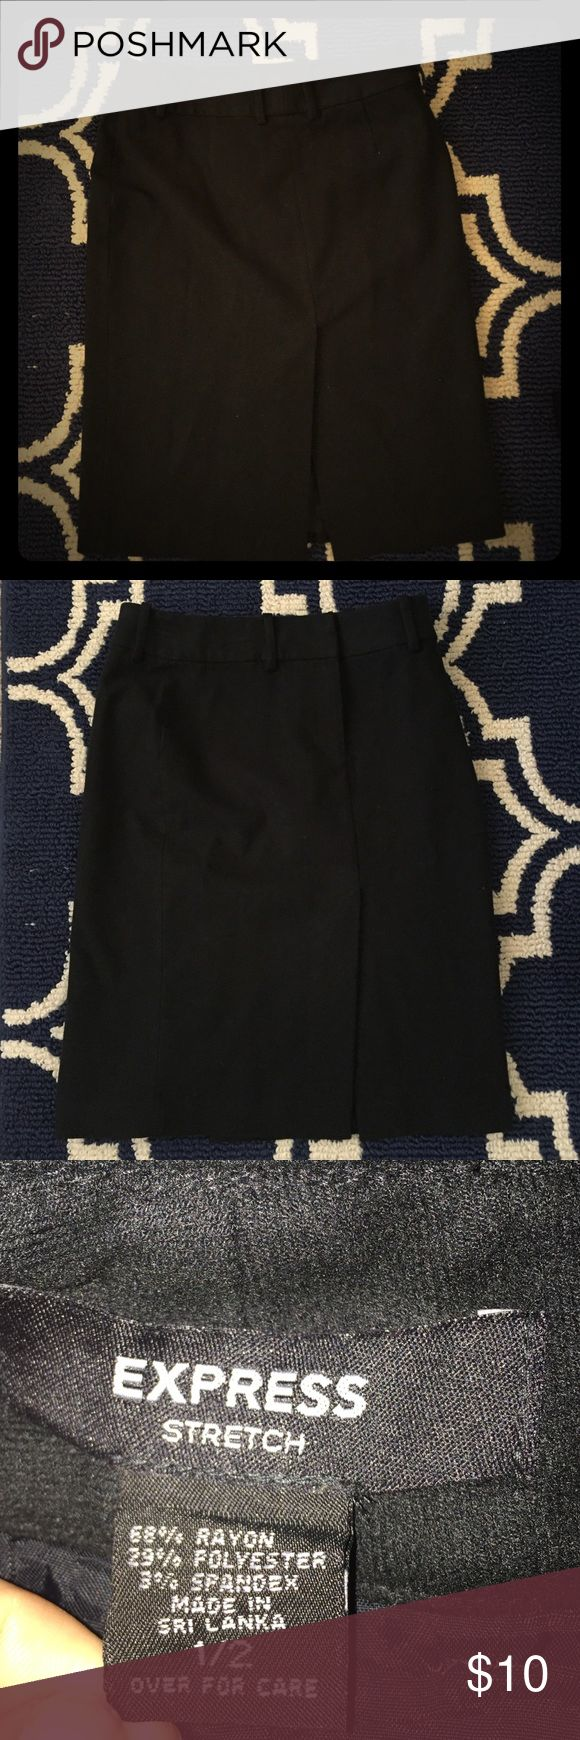 Express Stretch Pencil Skirt (1/2 size)with Slits Express Stretch Pencil Skirt with Slits *Slits in front and back of skirt. *Belt Loops Express Skirts Pencil